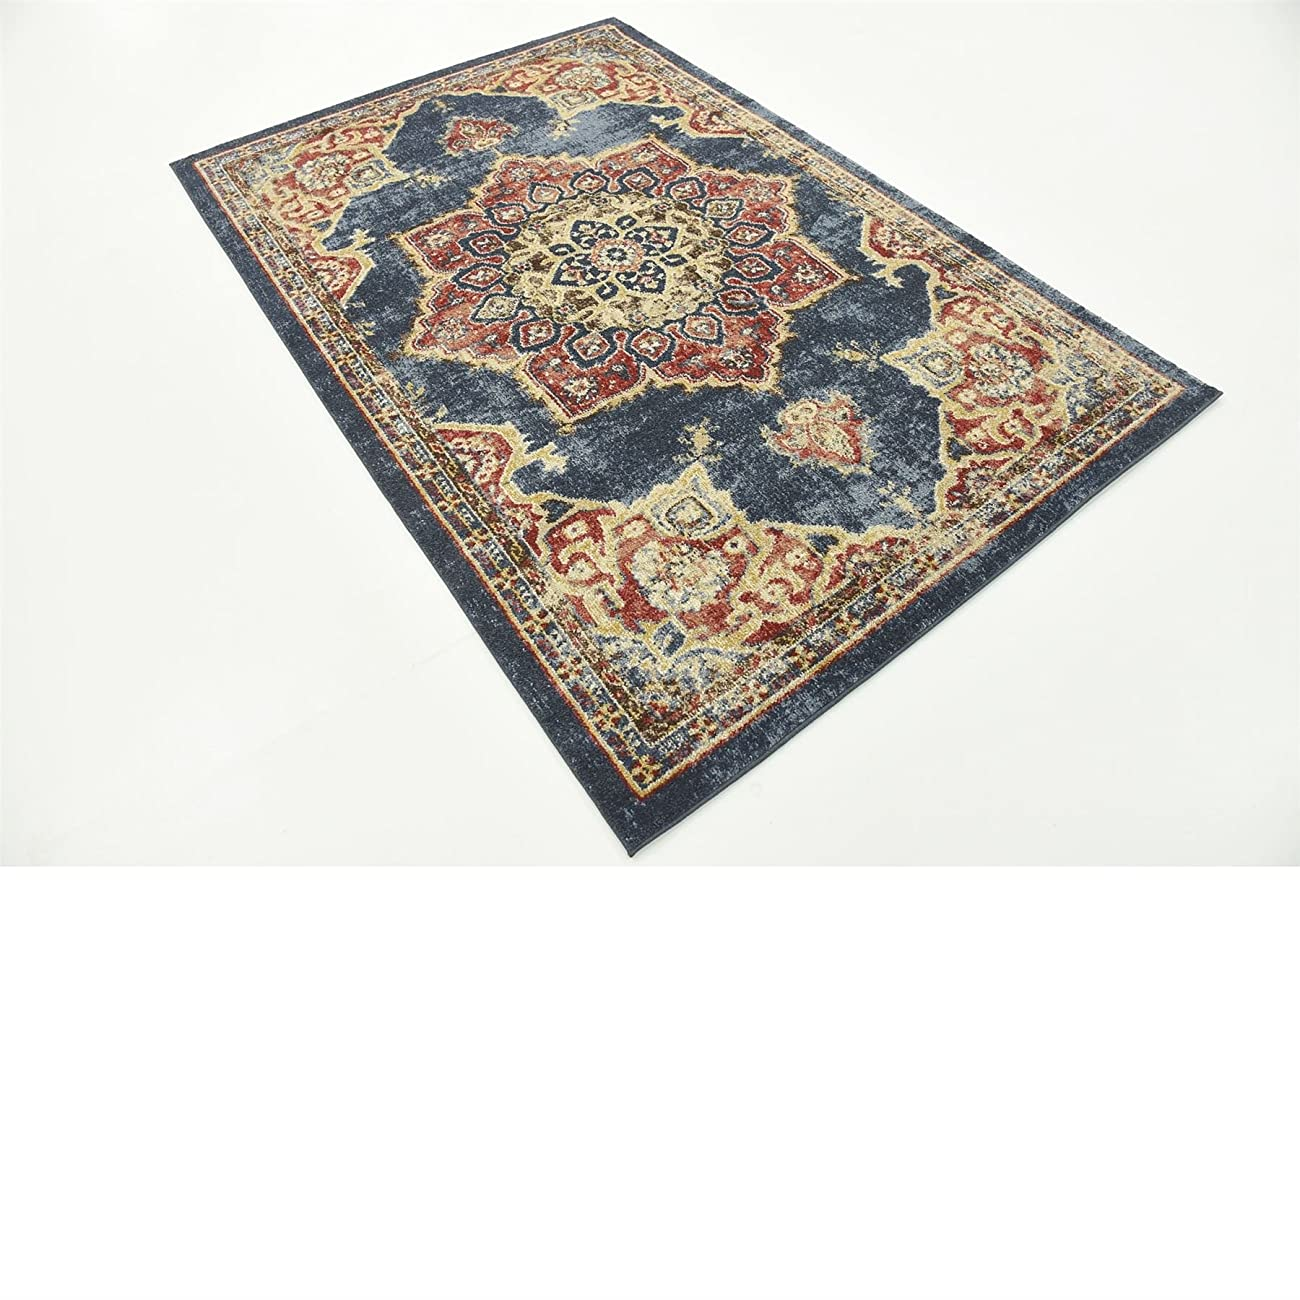 Traditional Persian Rugs Vintage Design Inspired Overdyed Fancy Dark Blue 4' x 6' FT (122cm x 183cm) St. James Area Rug 6